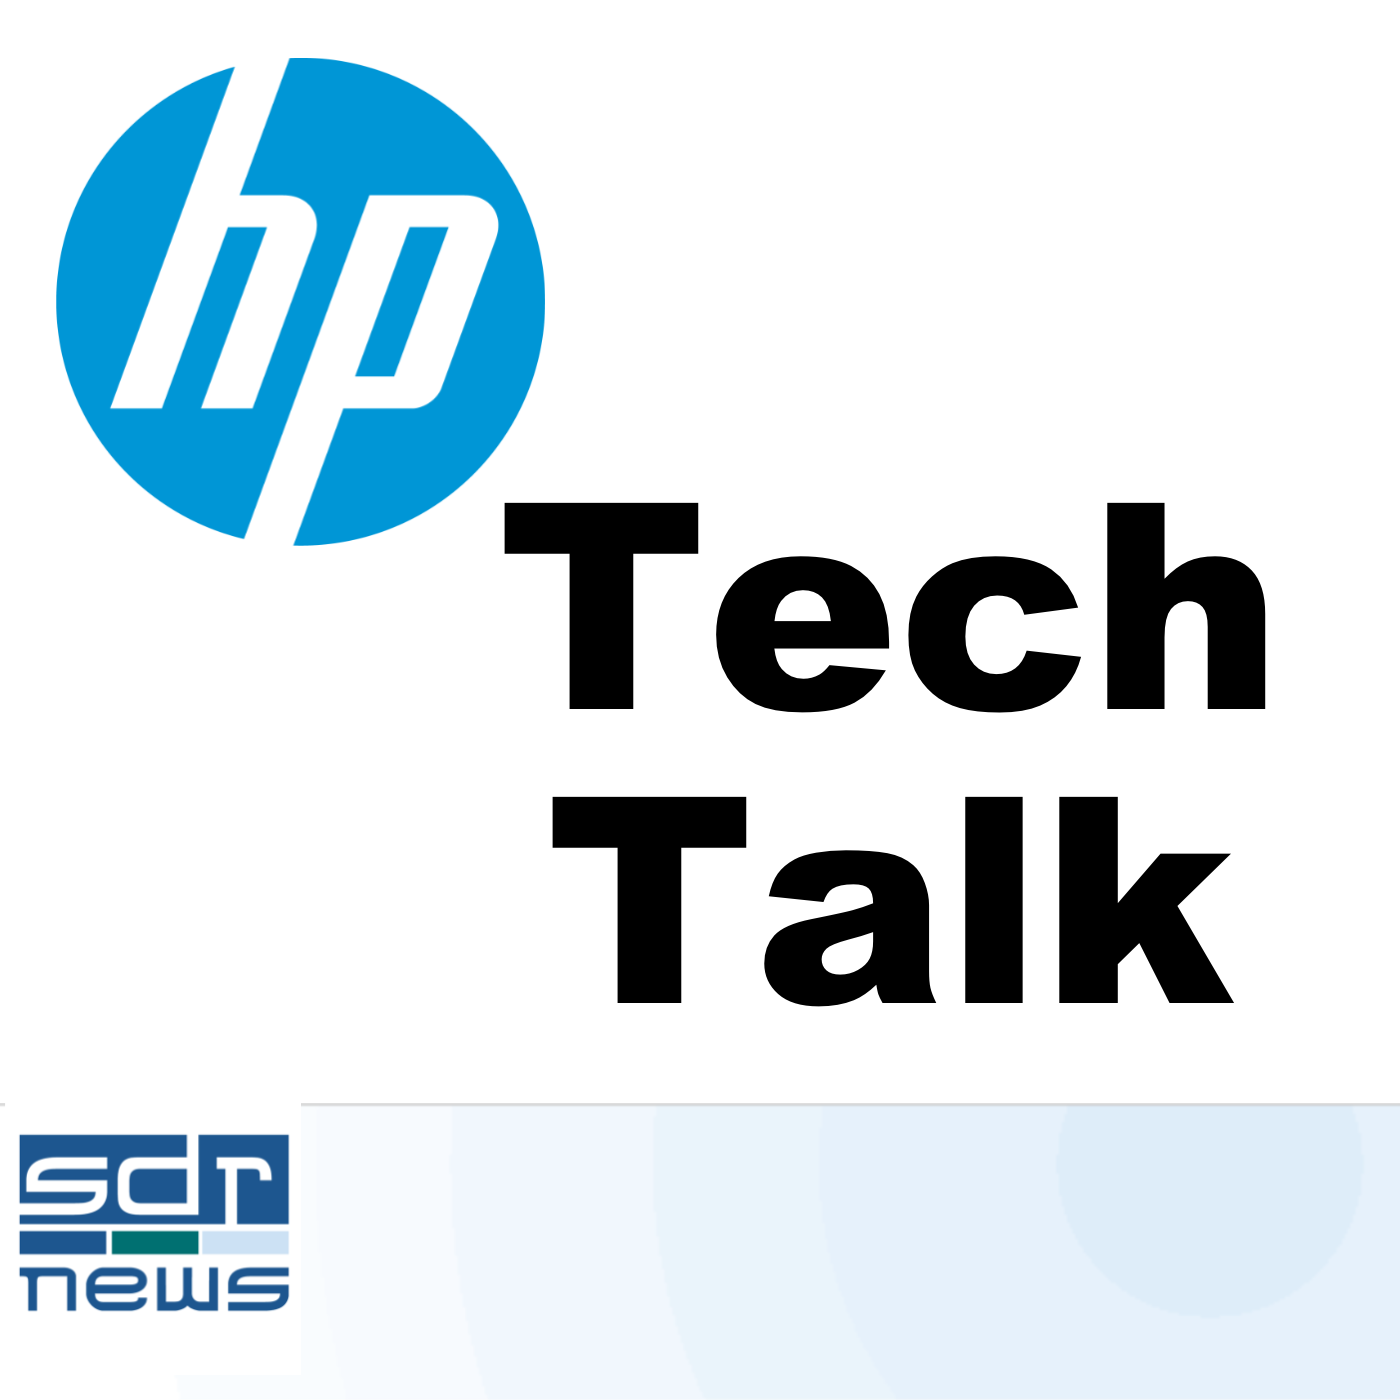 SDRNews: HP Tech Talk Audio Edition